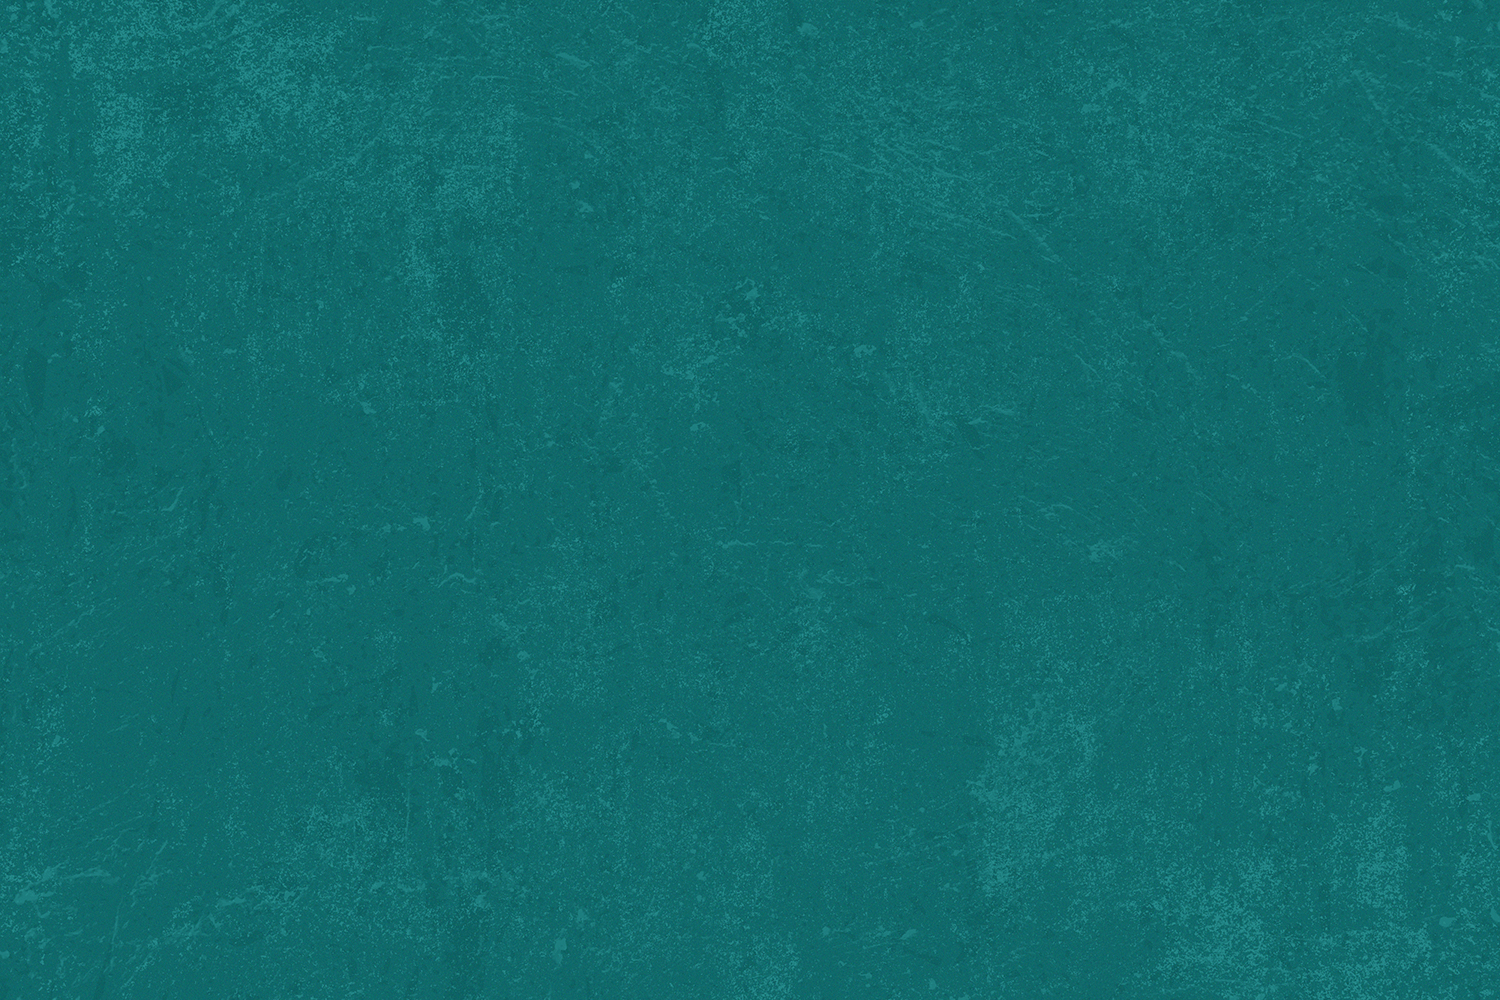 Grunge Texture Backgrounds example image 18